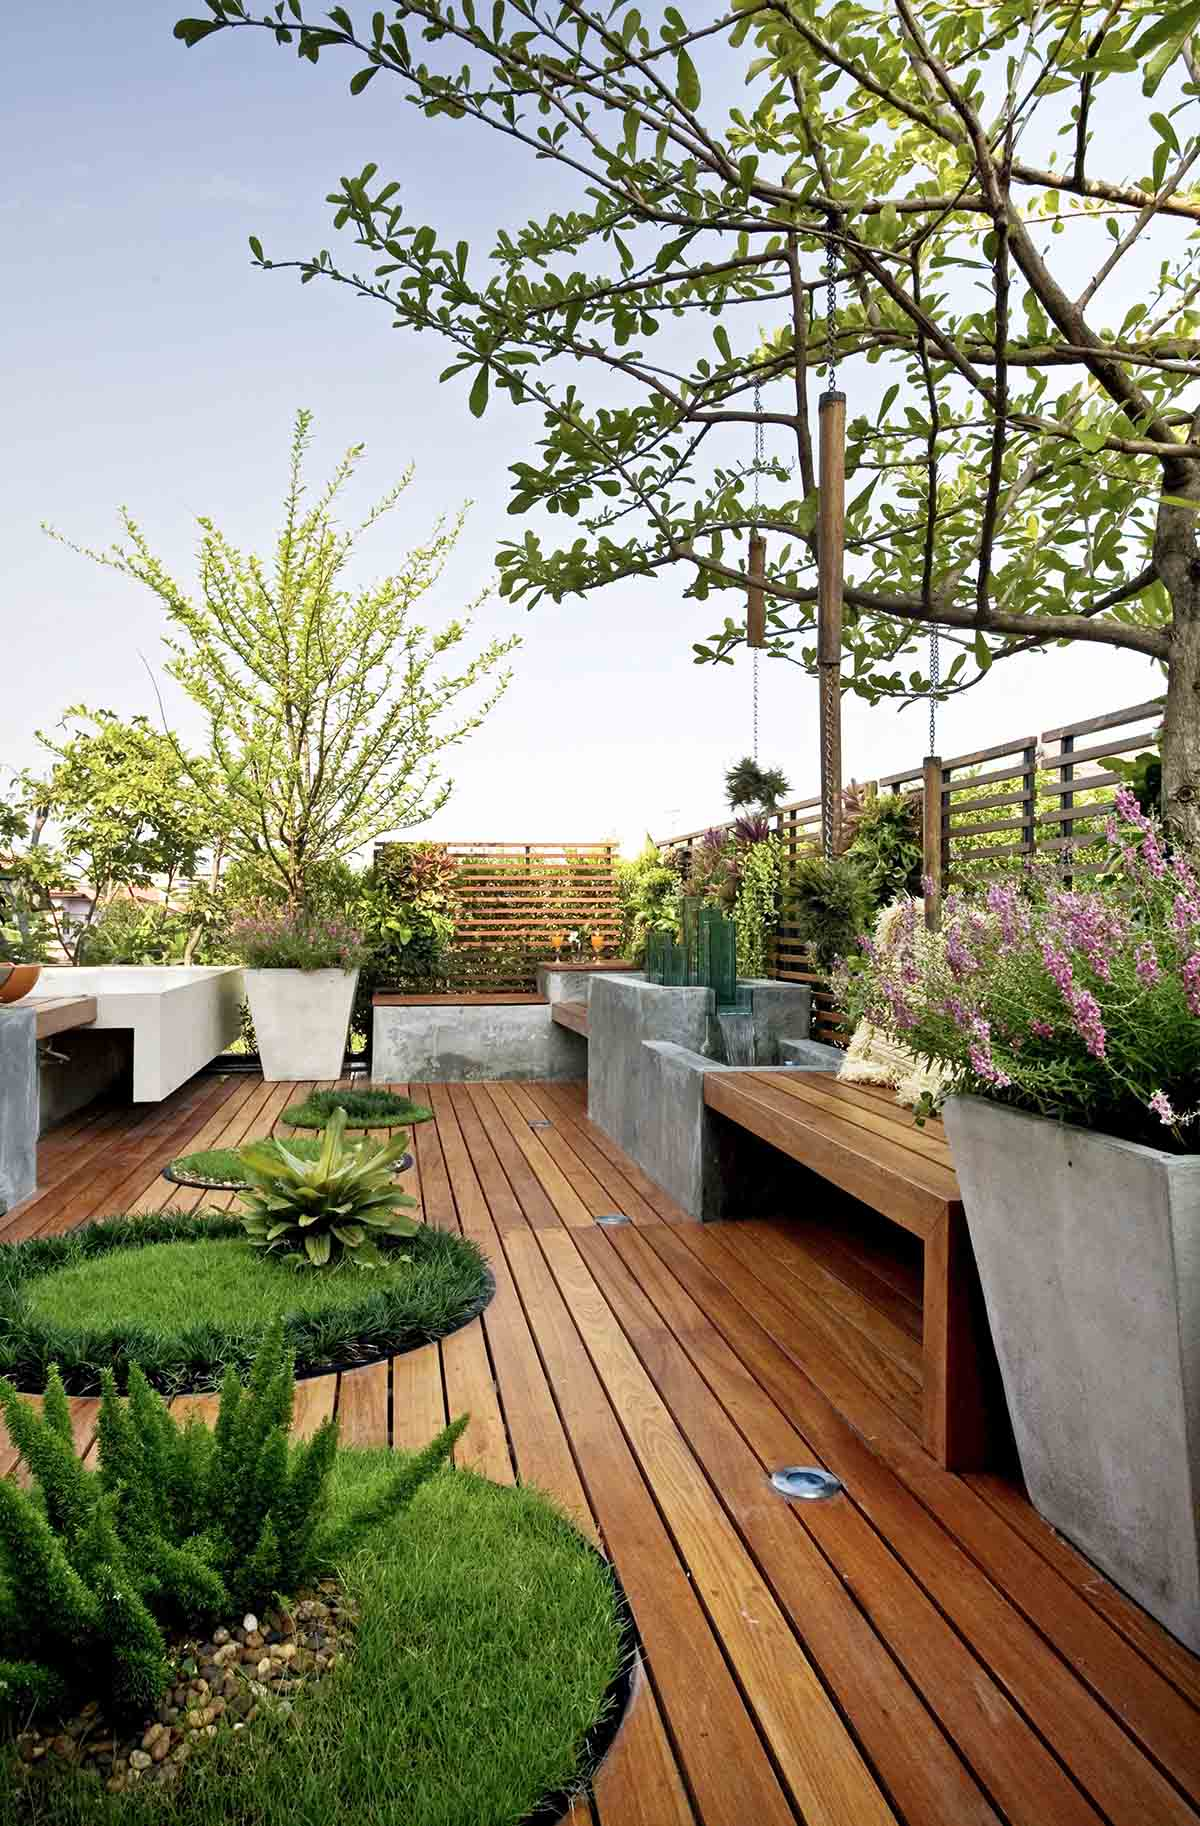 Concrete Planters and In-Set Grass Patches